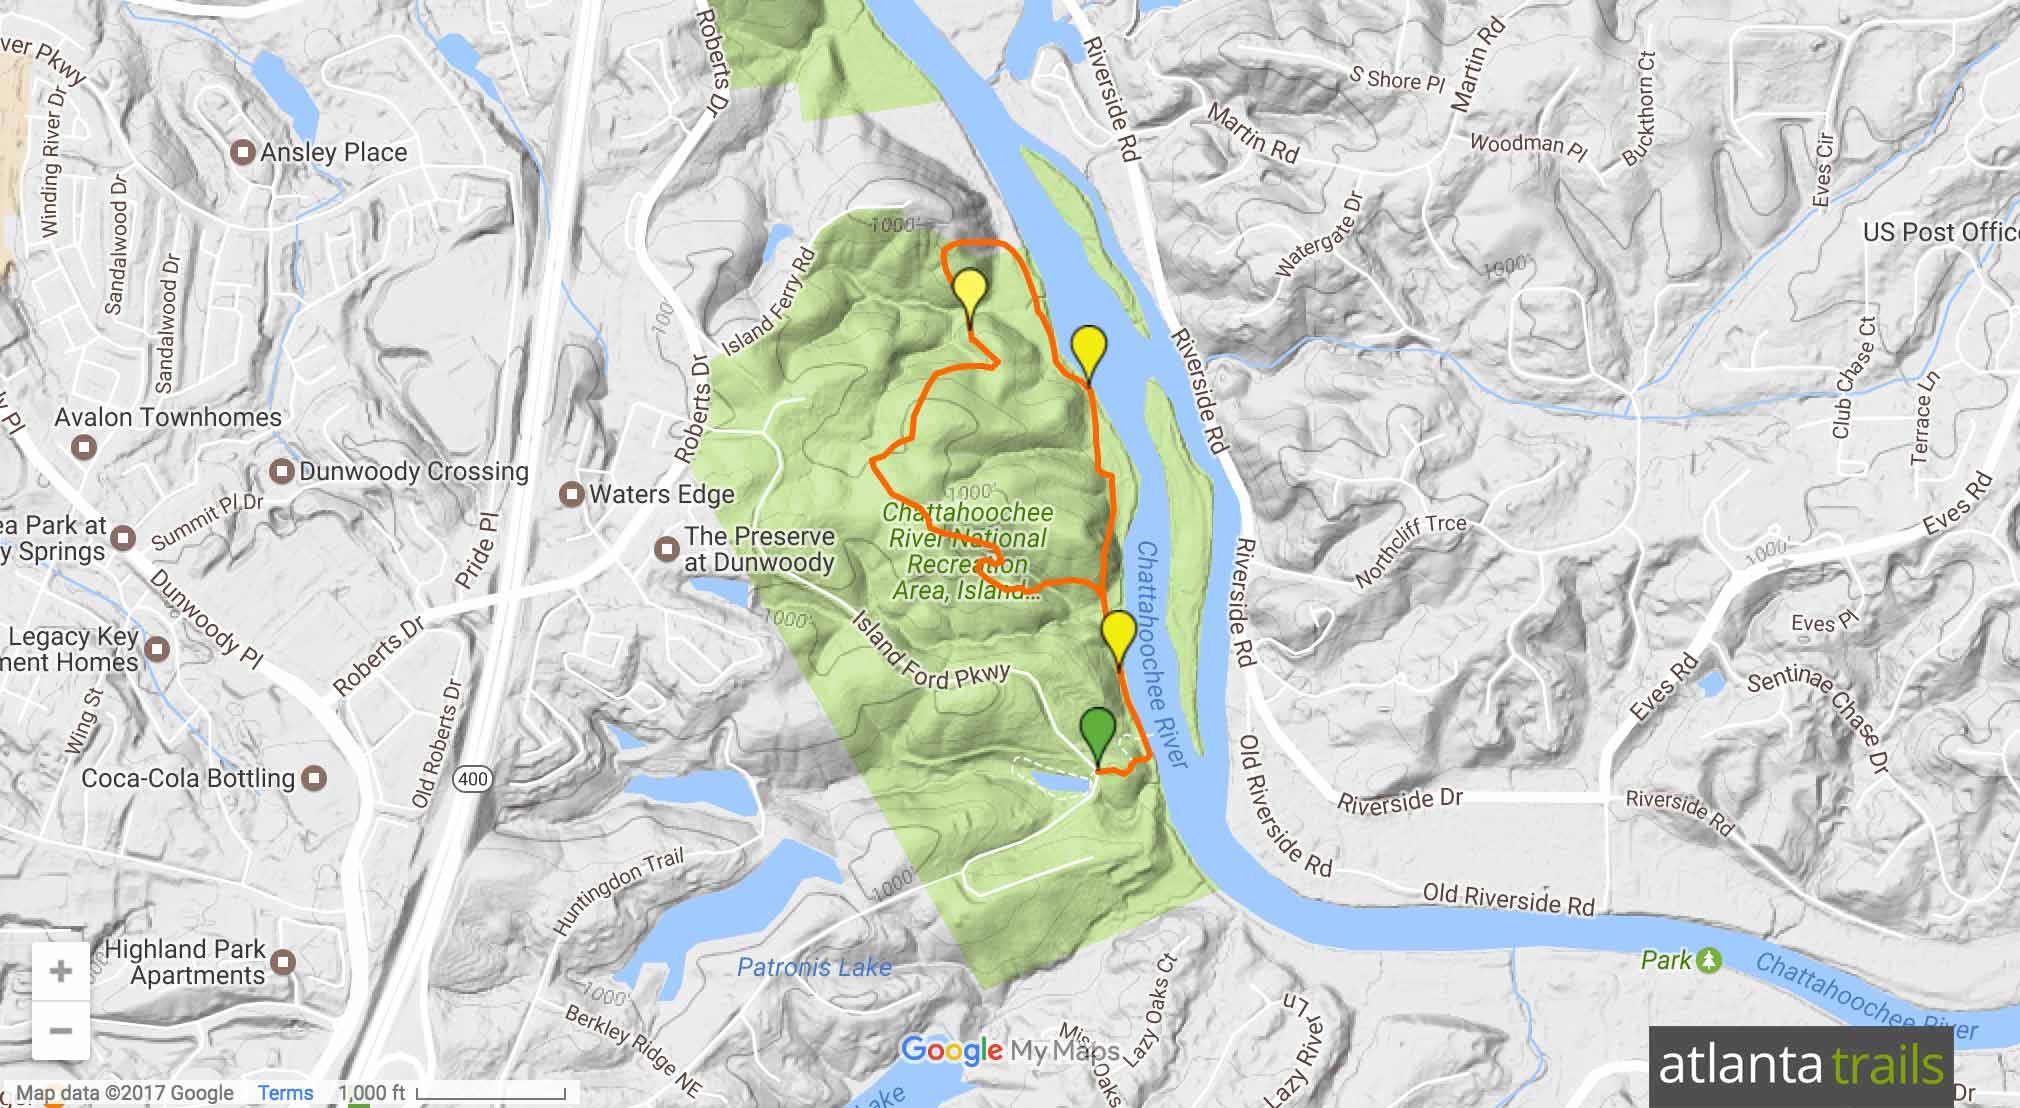 Island Ford Trail on the Chattahoochee River Map